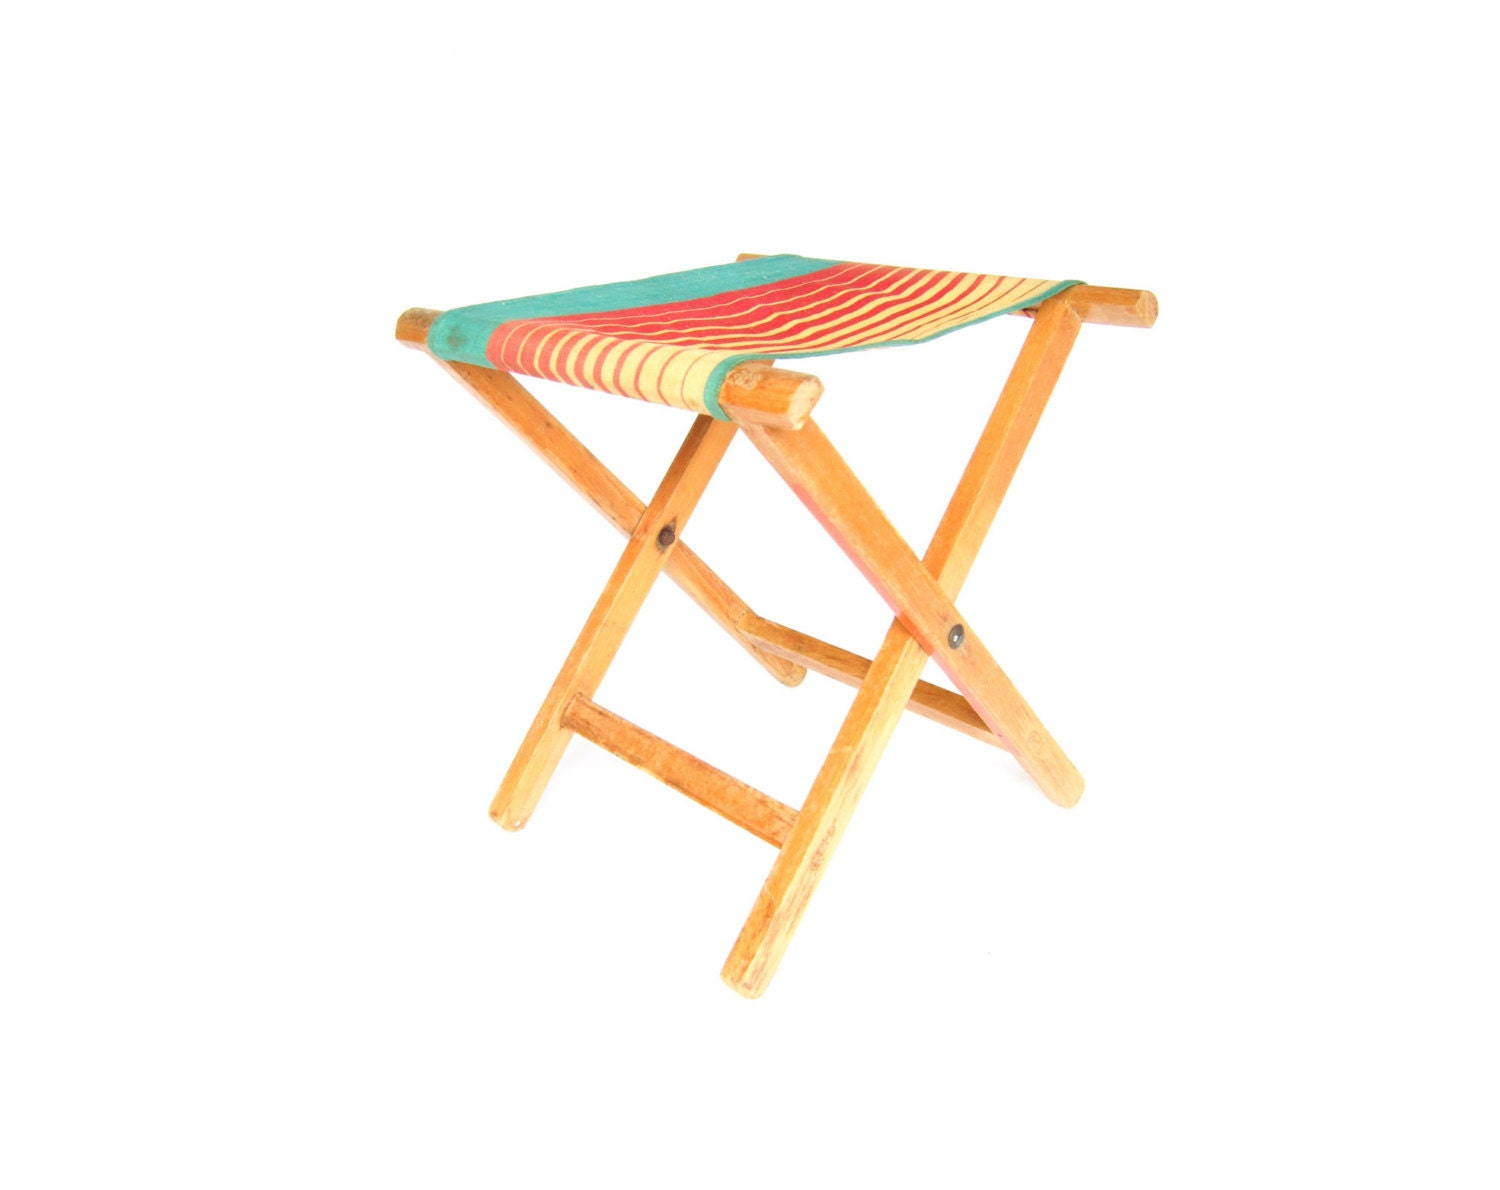 Vintage Camping Stool Folding Canvas Camp Chair